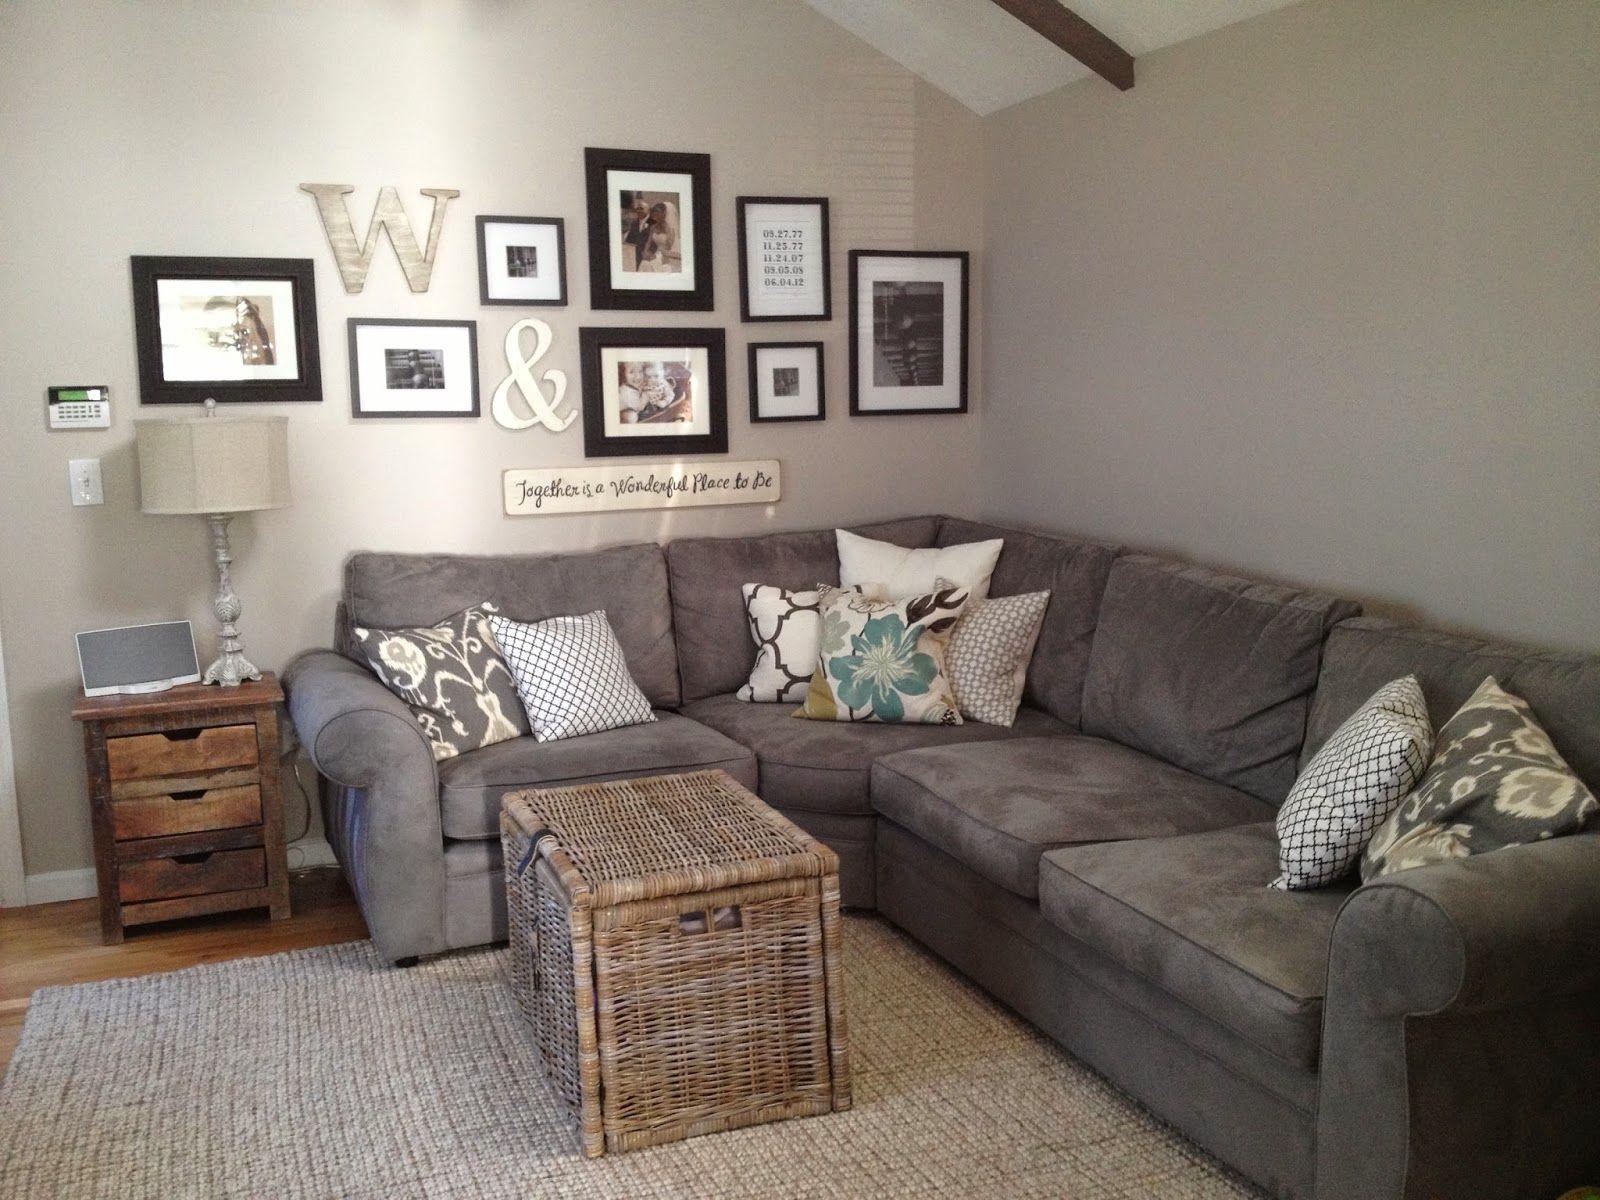 Gray Sofas For Living Room Inspire Me Please Linky Party Walls Room Wall Decor Living